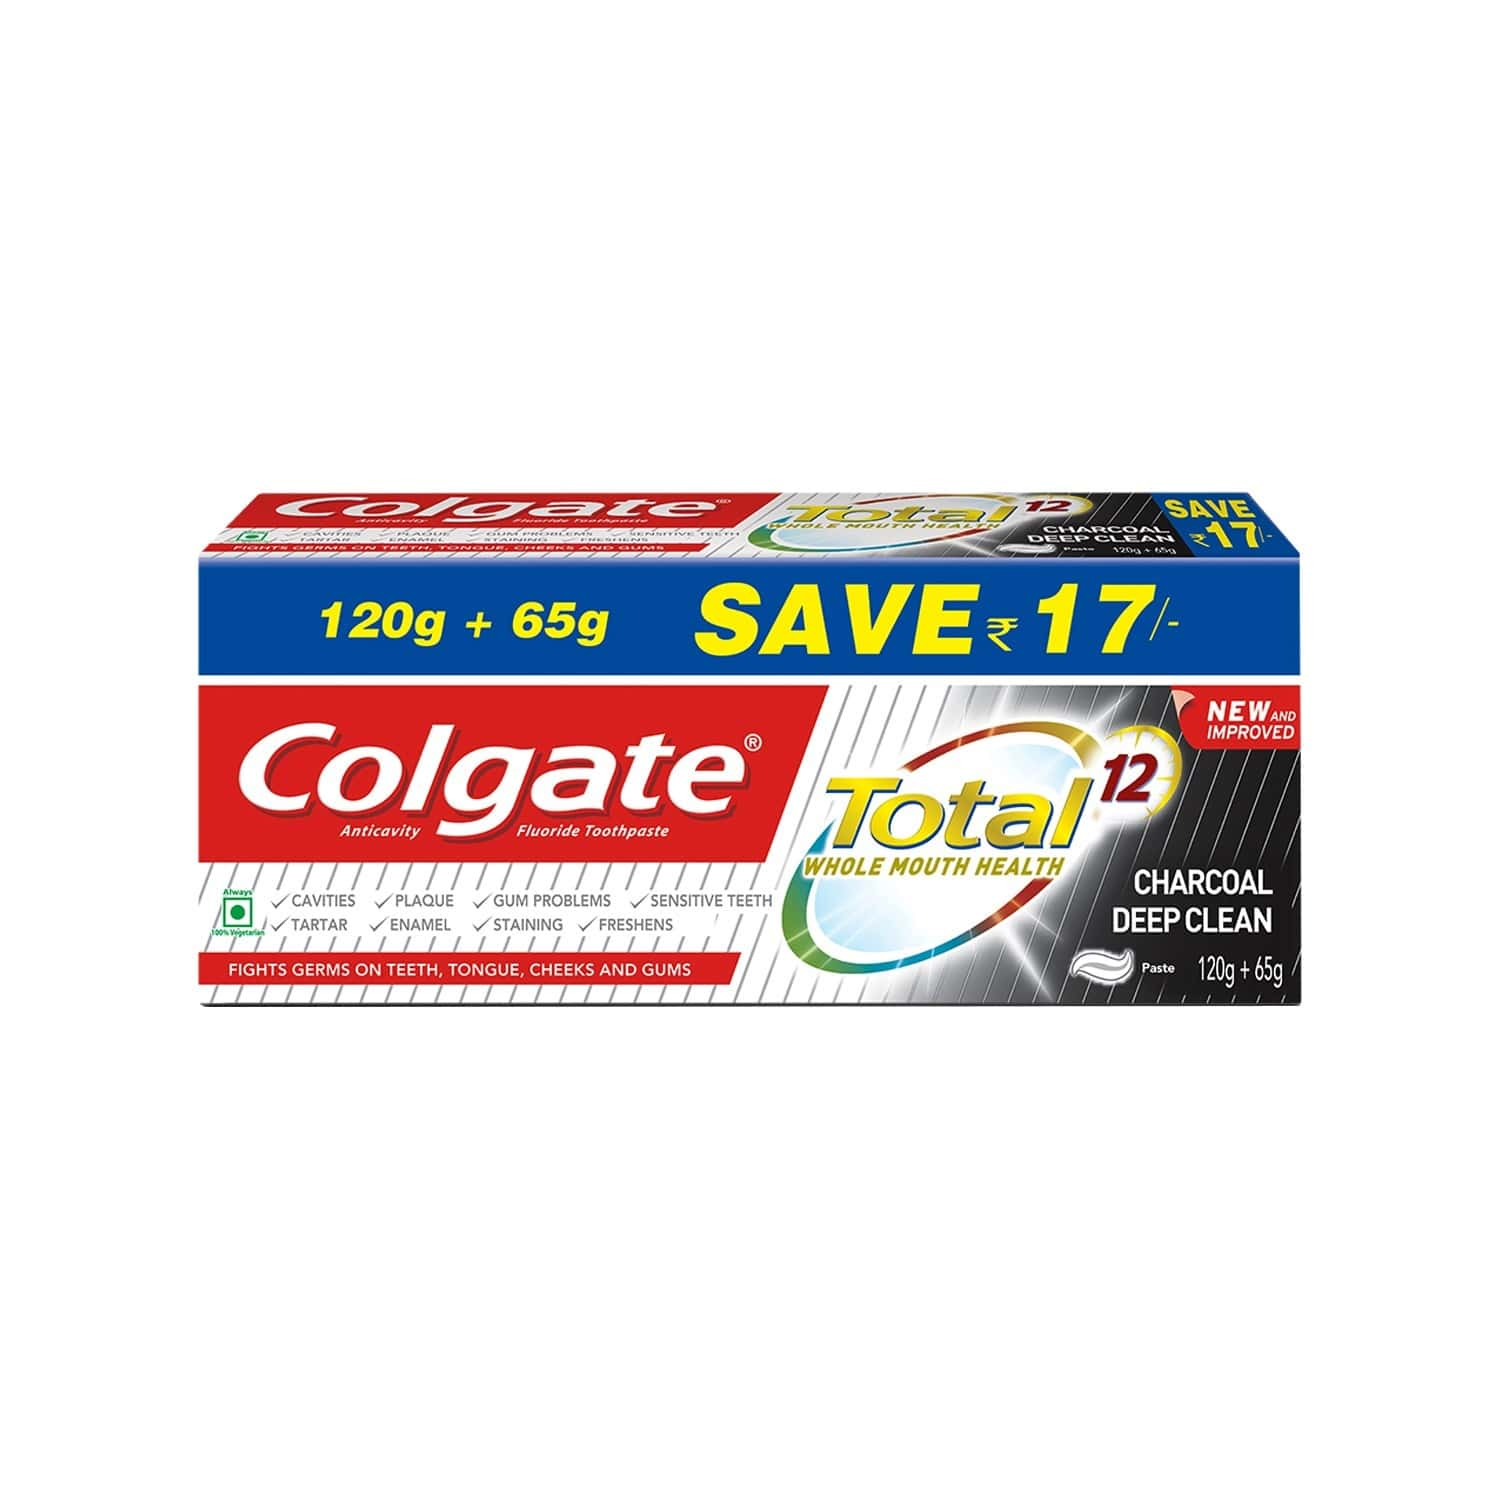 Colgate Total Whole Mouth Health, Antibacterial Toothpaste - 185g (charcoal Deep Clean, Saver Pack)